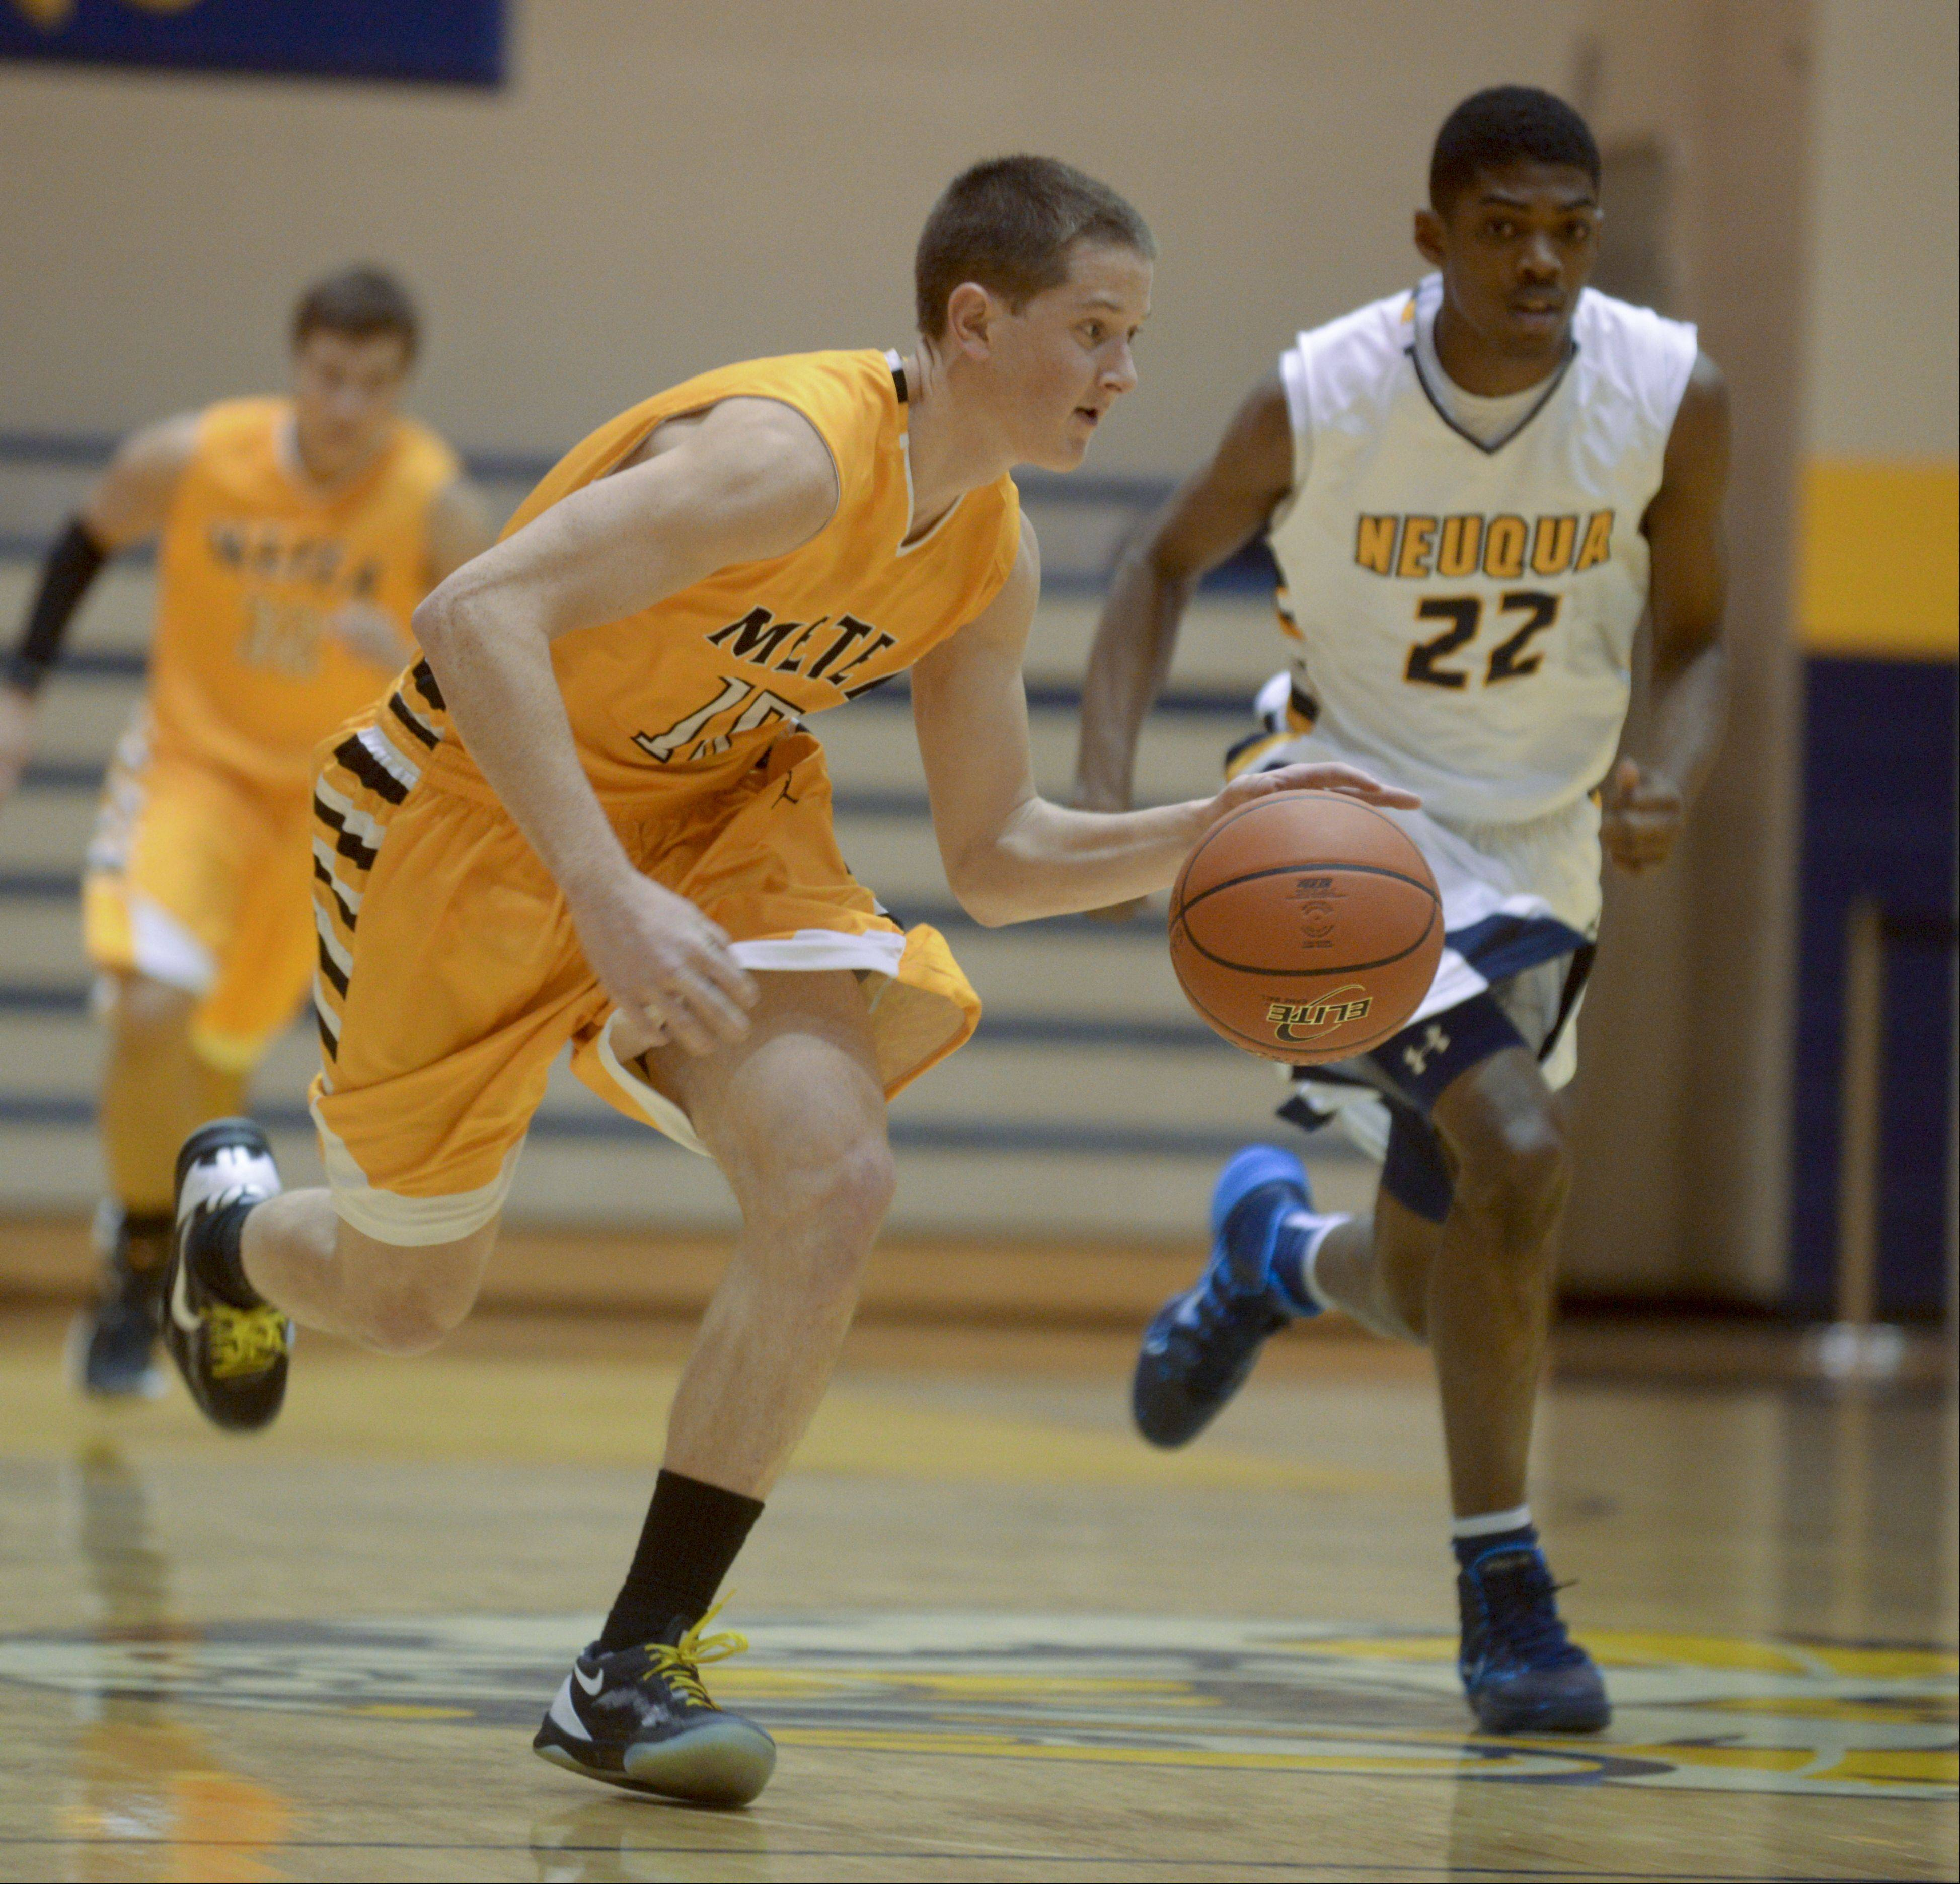 Images: Metea Valley at Neuqua Valley boys basketball